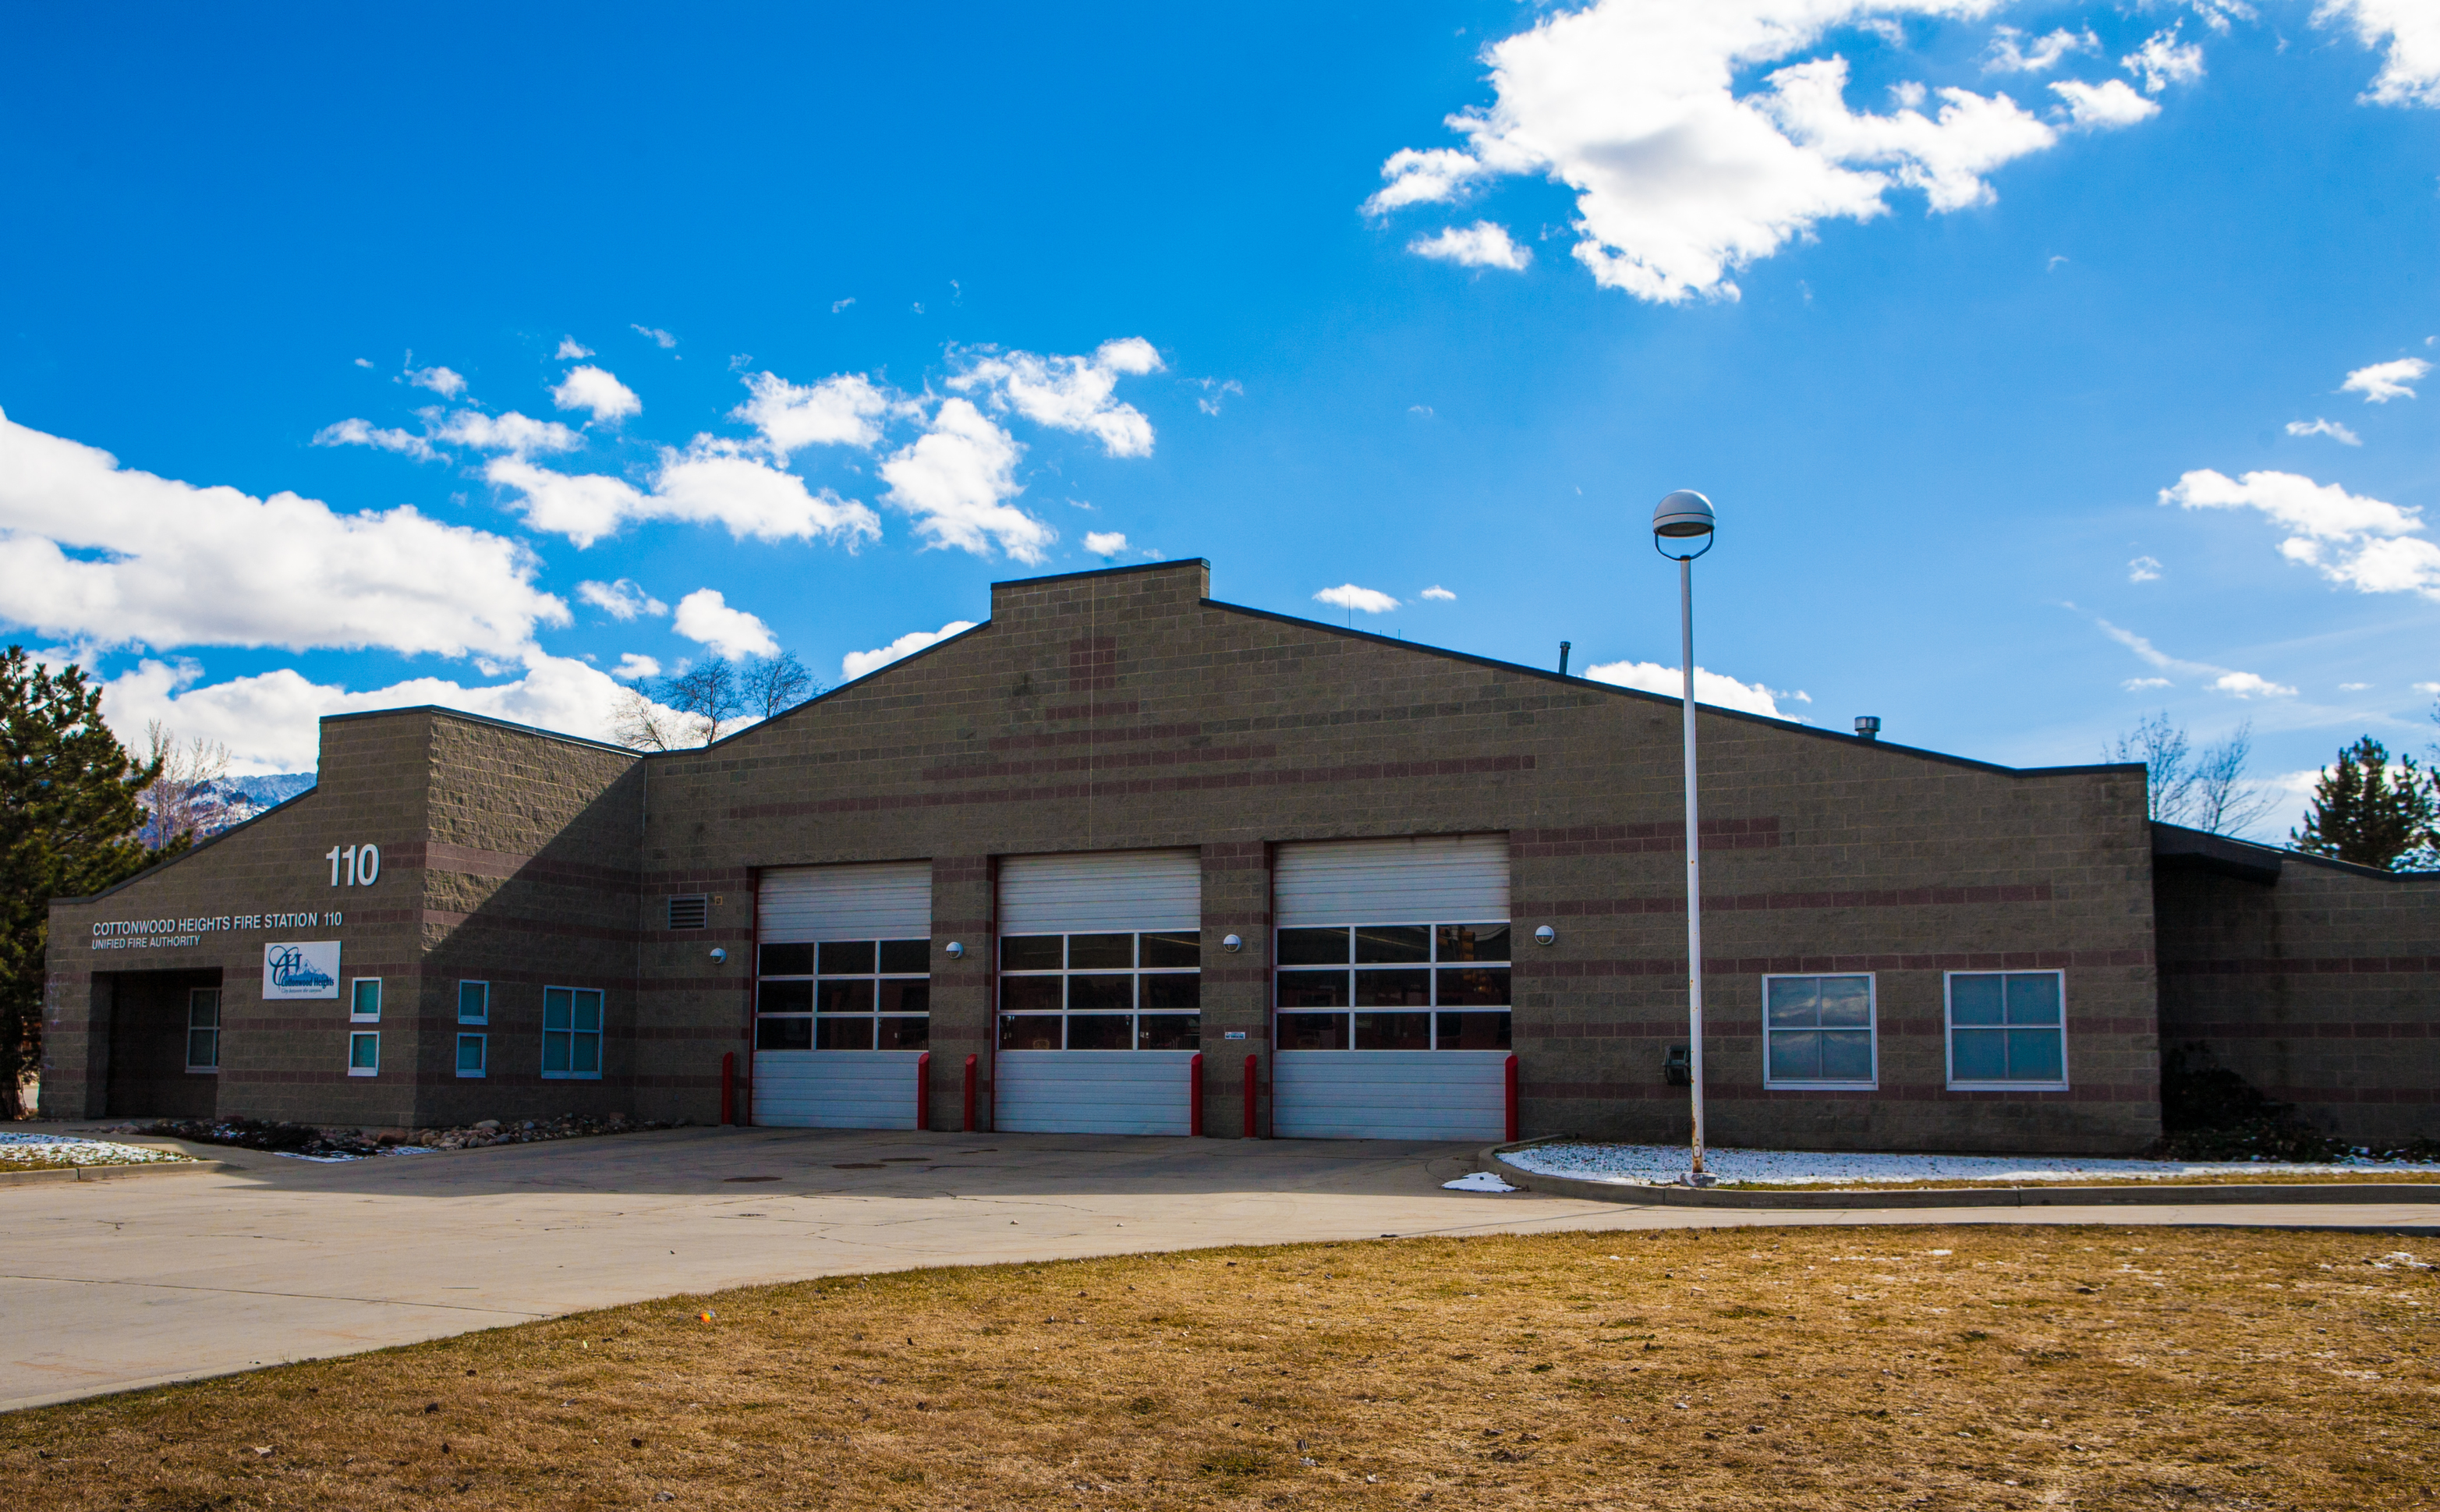 Station 110 1790 East Fort Union Blvd Cottonwood Heights, UT 84121